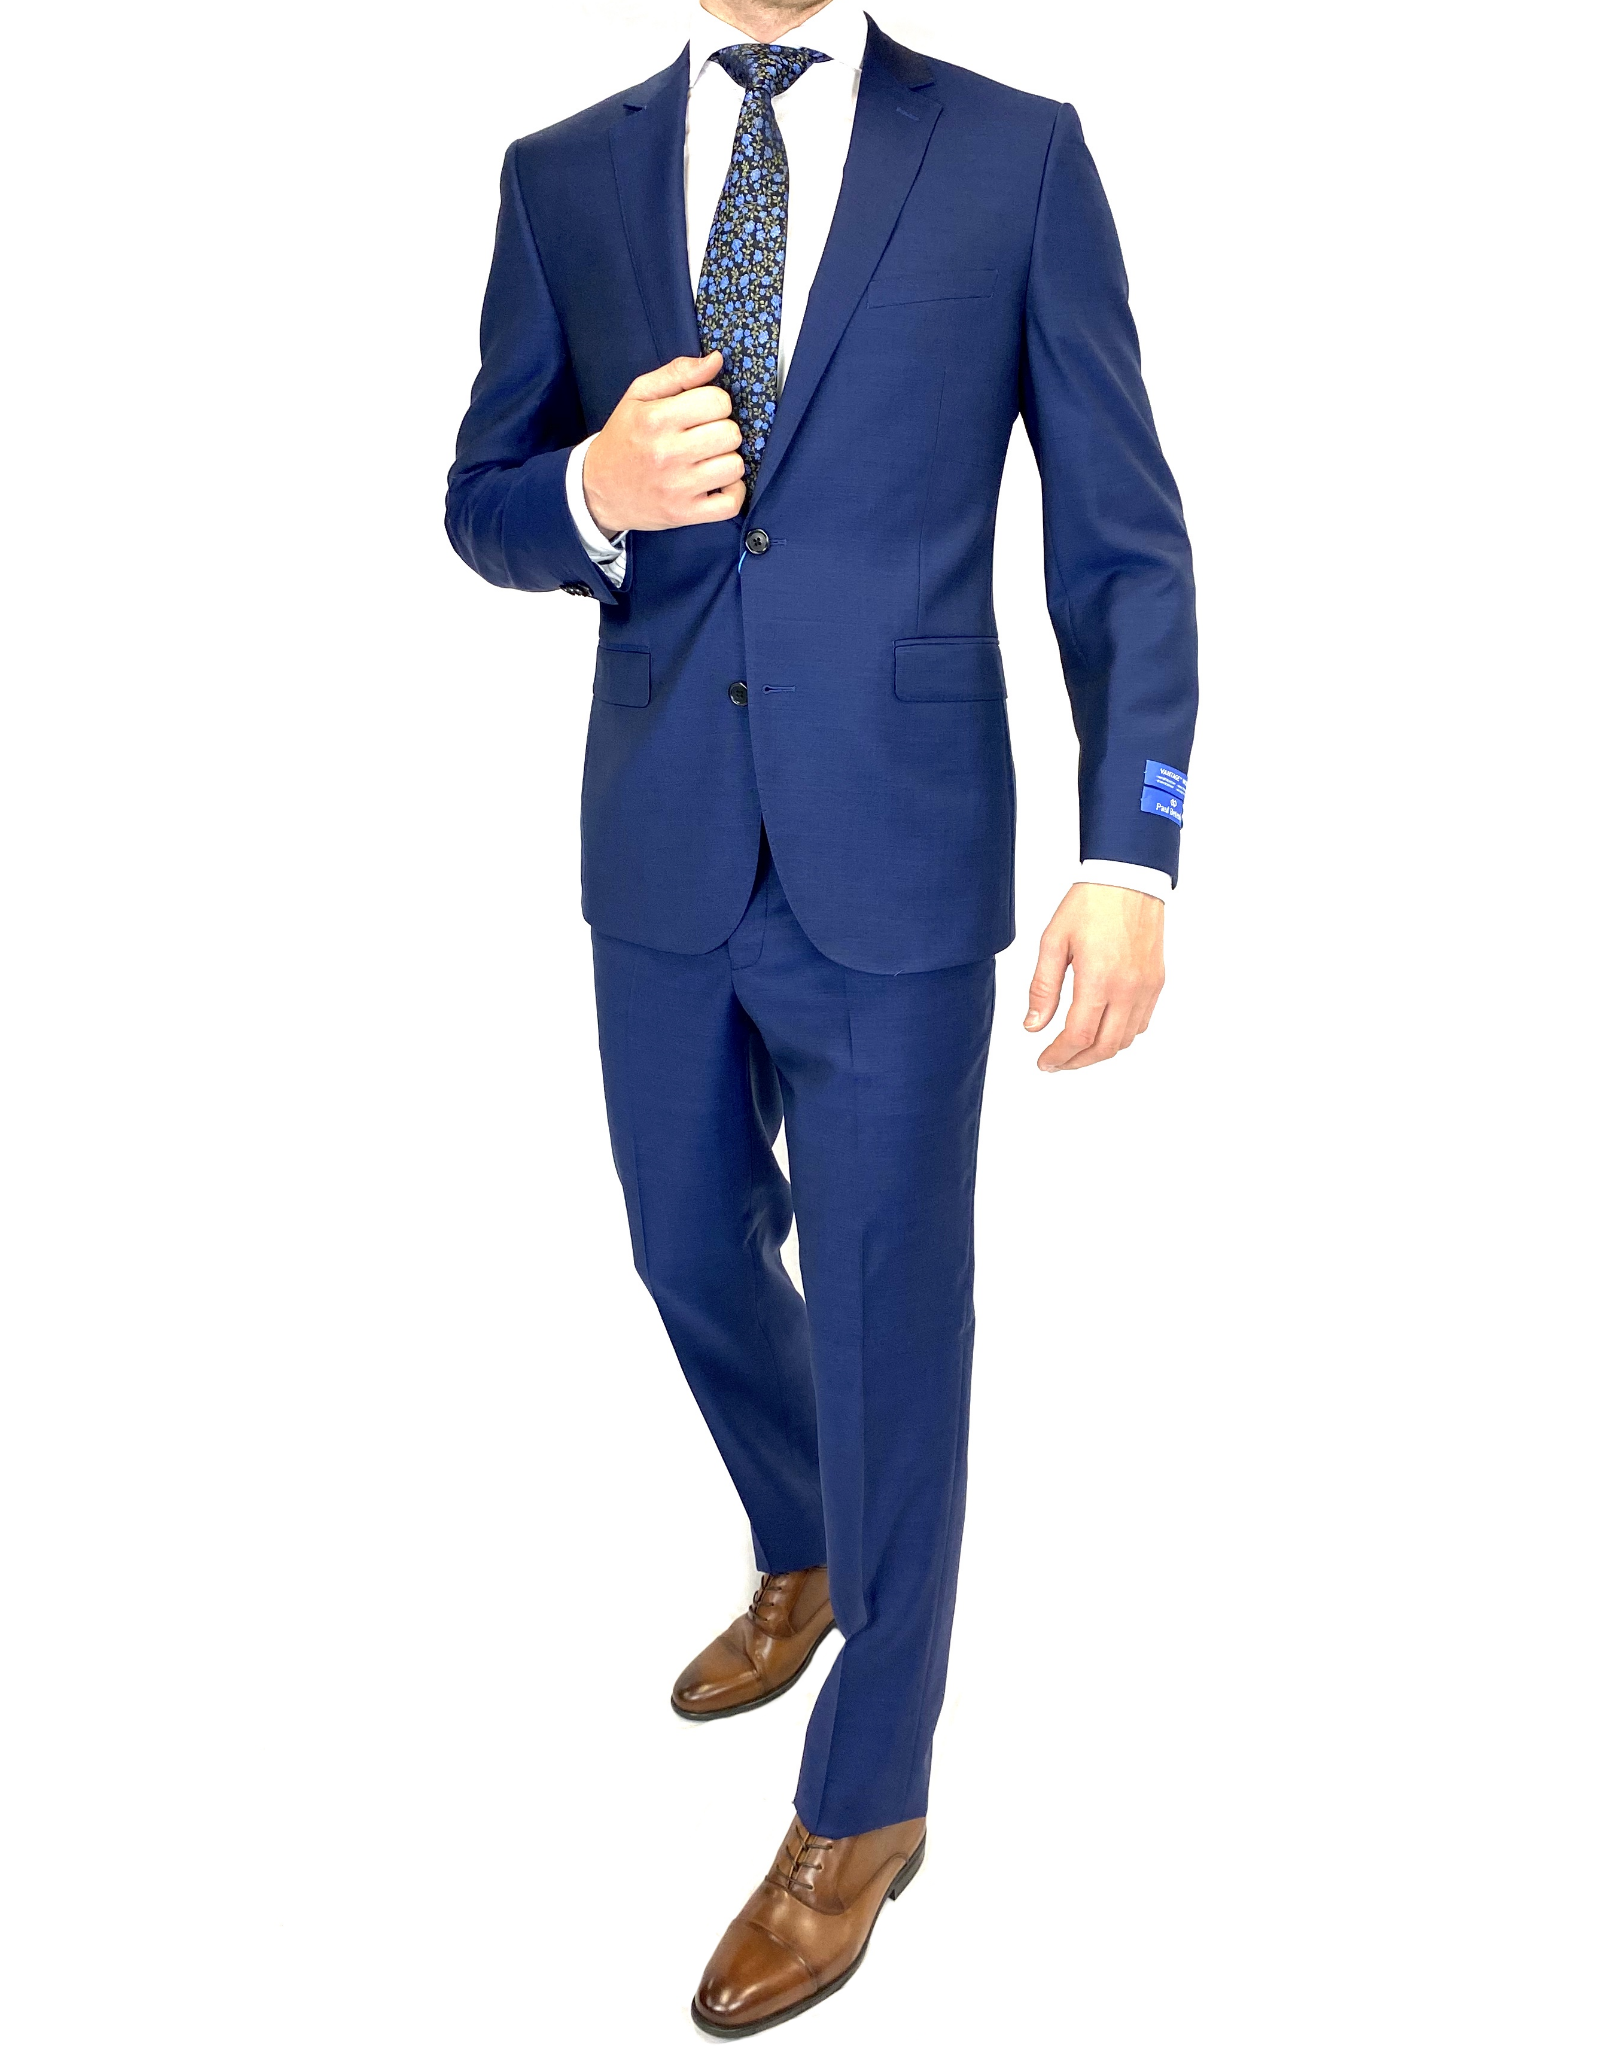 Paul Betenly Superbue Wool Suit